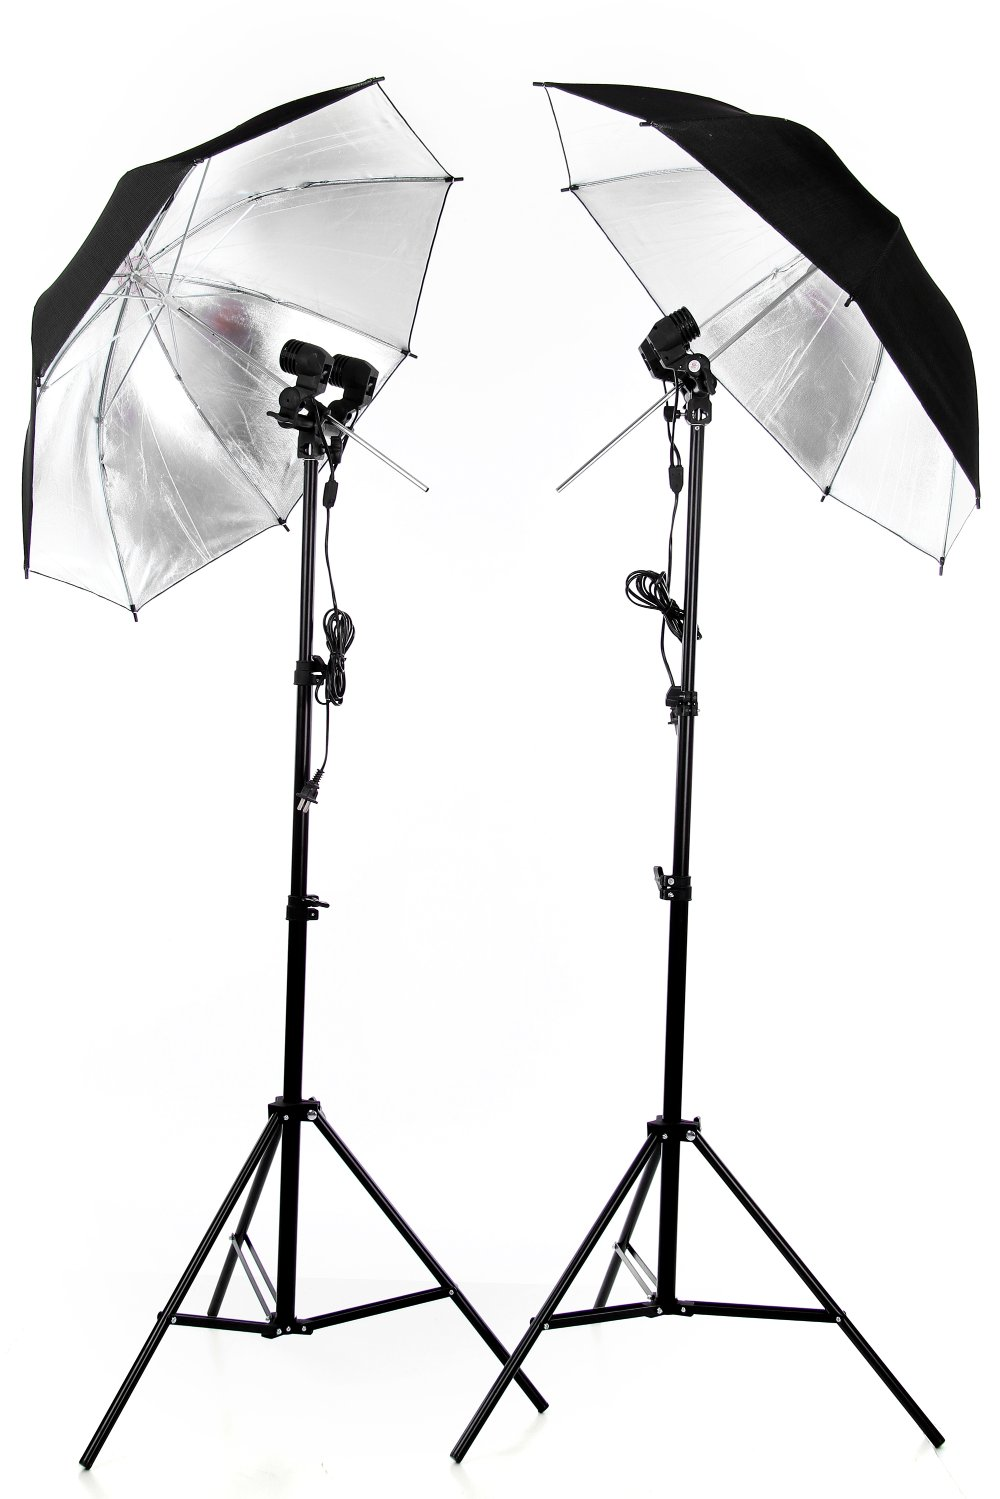 Photo Photography Umbrella Stand Lighting Studio Light. Oil Spill In Kalamazoo River. Renters Insurance Orlando Stair Lifts Rentals. Get A 1800 Number For Cell Phone. Nursing Education Masters Programs Online. First Time Home Buyer Colorado. Online Course Platform Trade Schools Maryland. Hormone Therapy Orlando Ms Business Analytics. Creative Writing College Programs